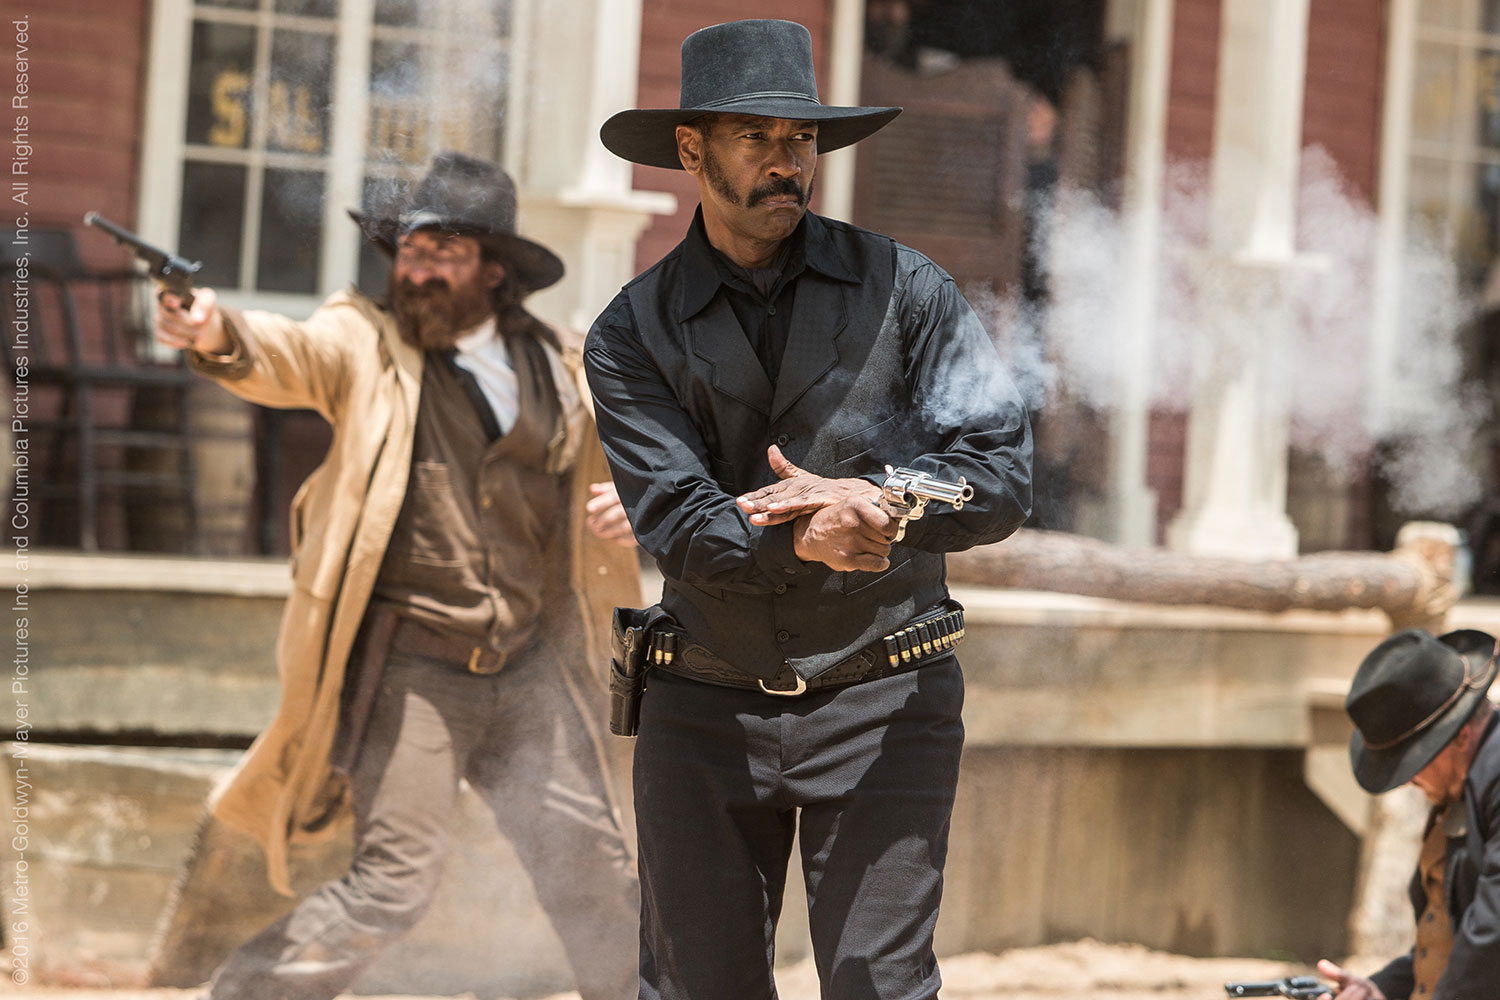 'The Magnificent Seven' movie review by Lucas Mirabella